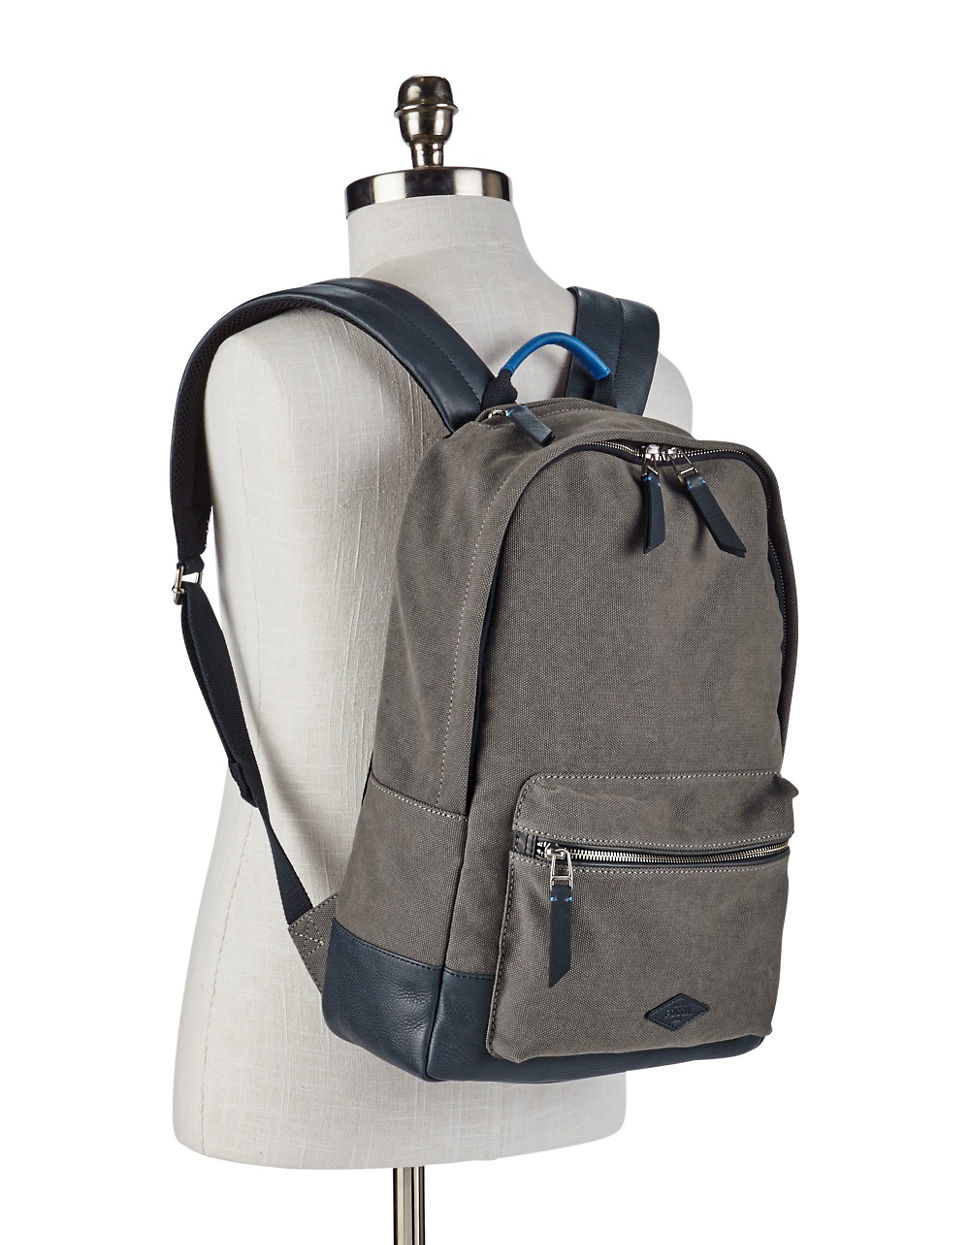 Lyst - Fossil Estate Leather-trimmed Backpack in Gray for Men